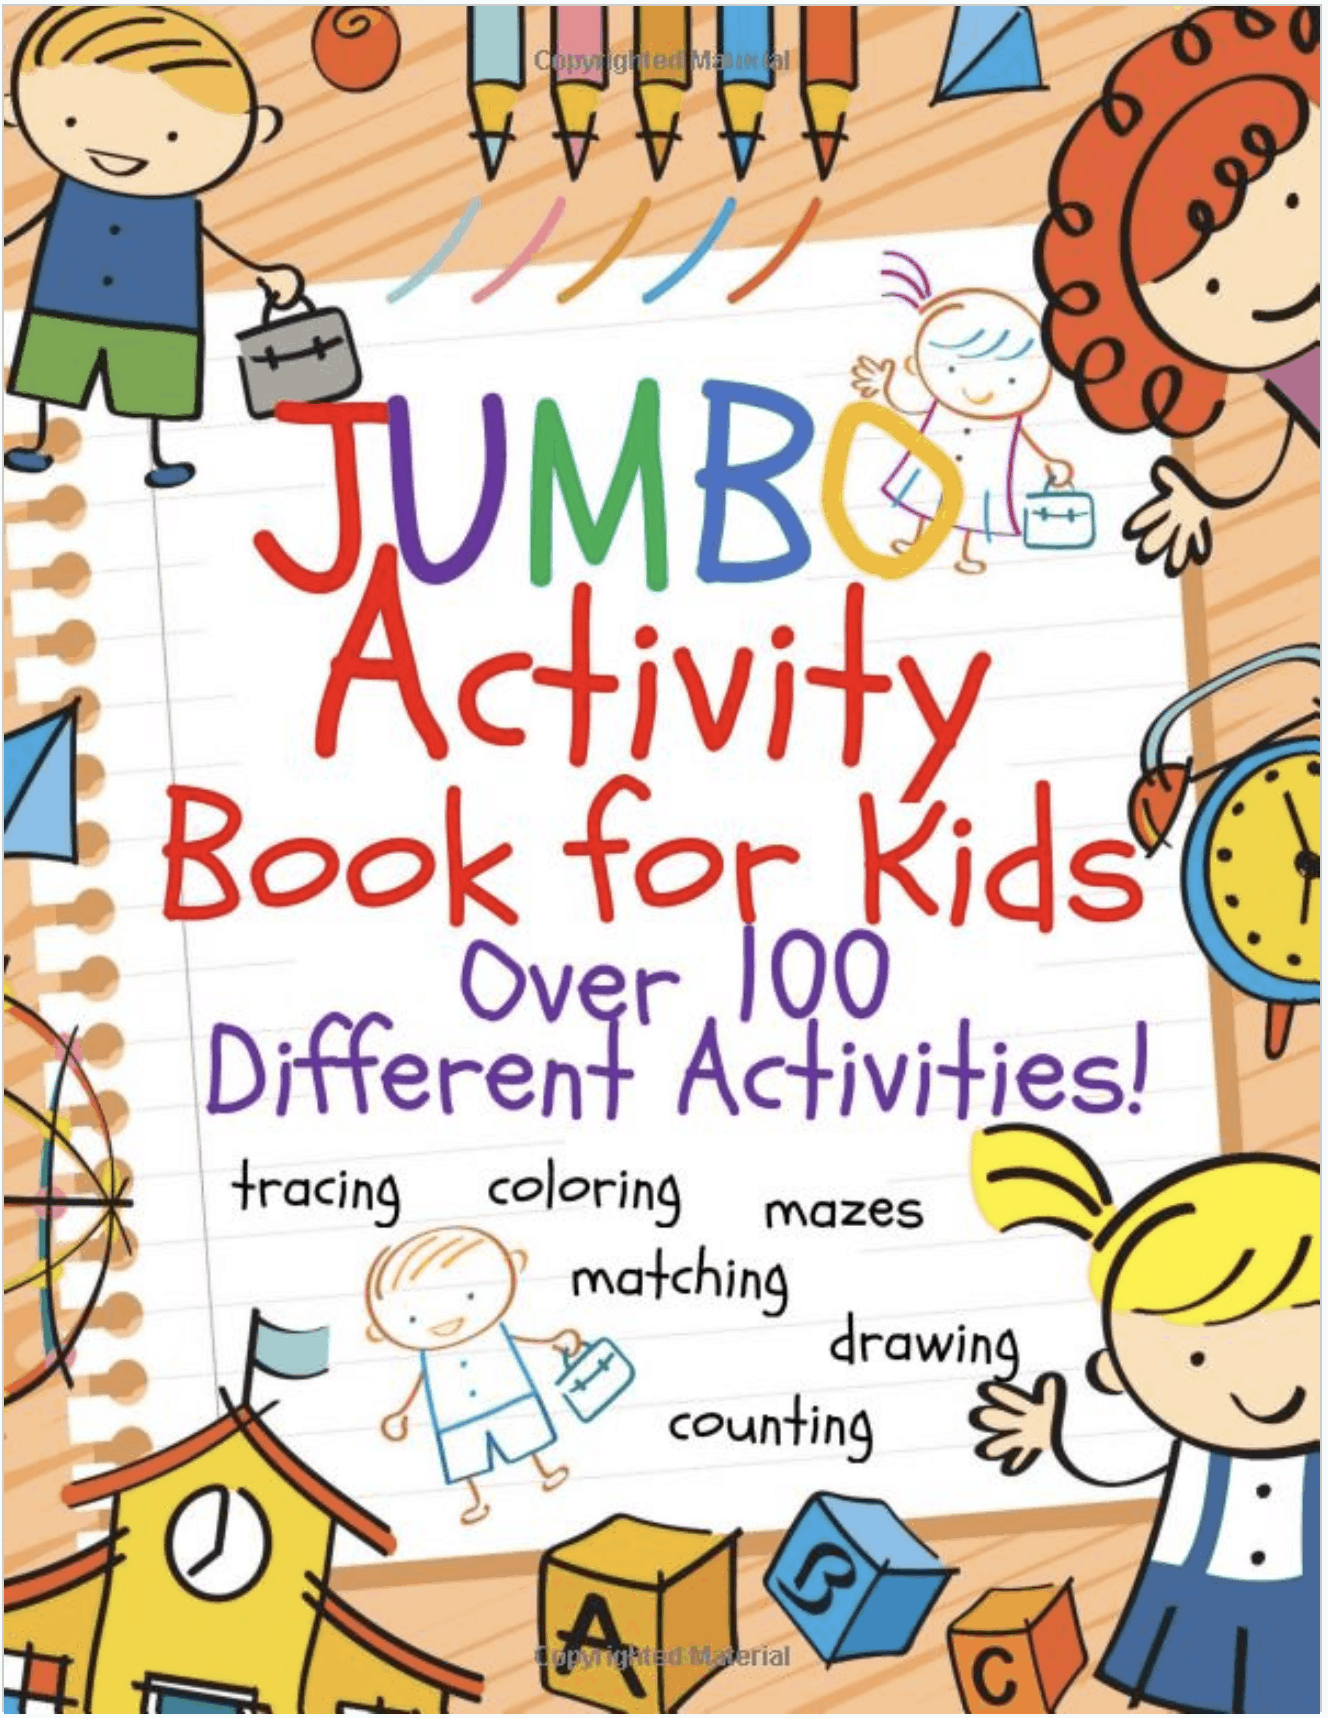 Best Activity Books For Kids Ages 4-8